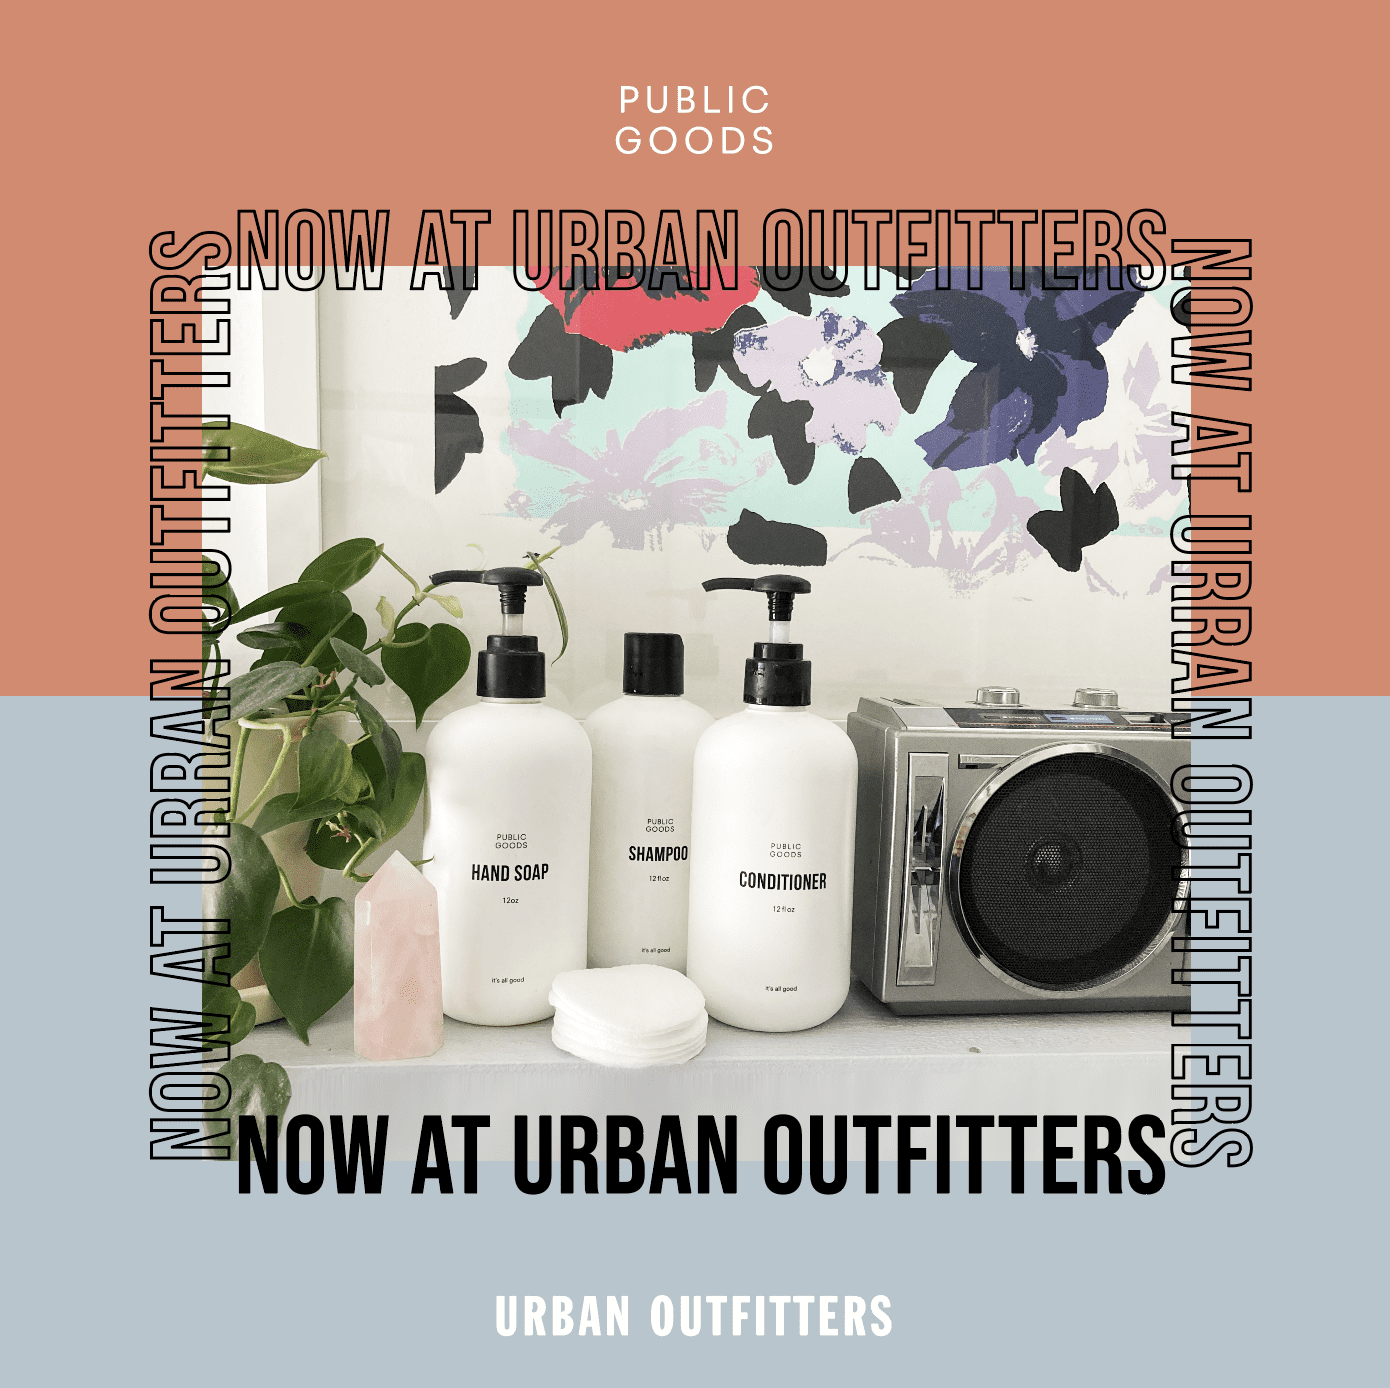 Partnering with Urban Outfitters | Eco-Friendly